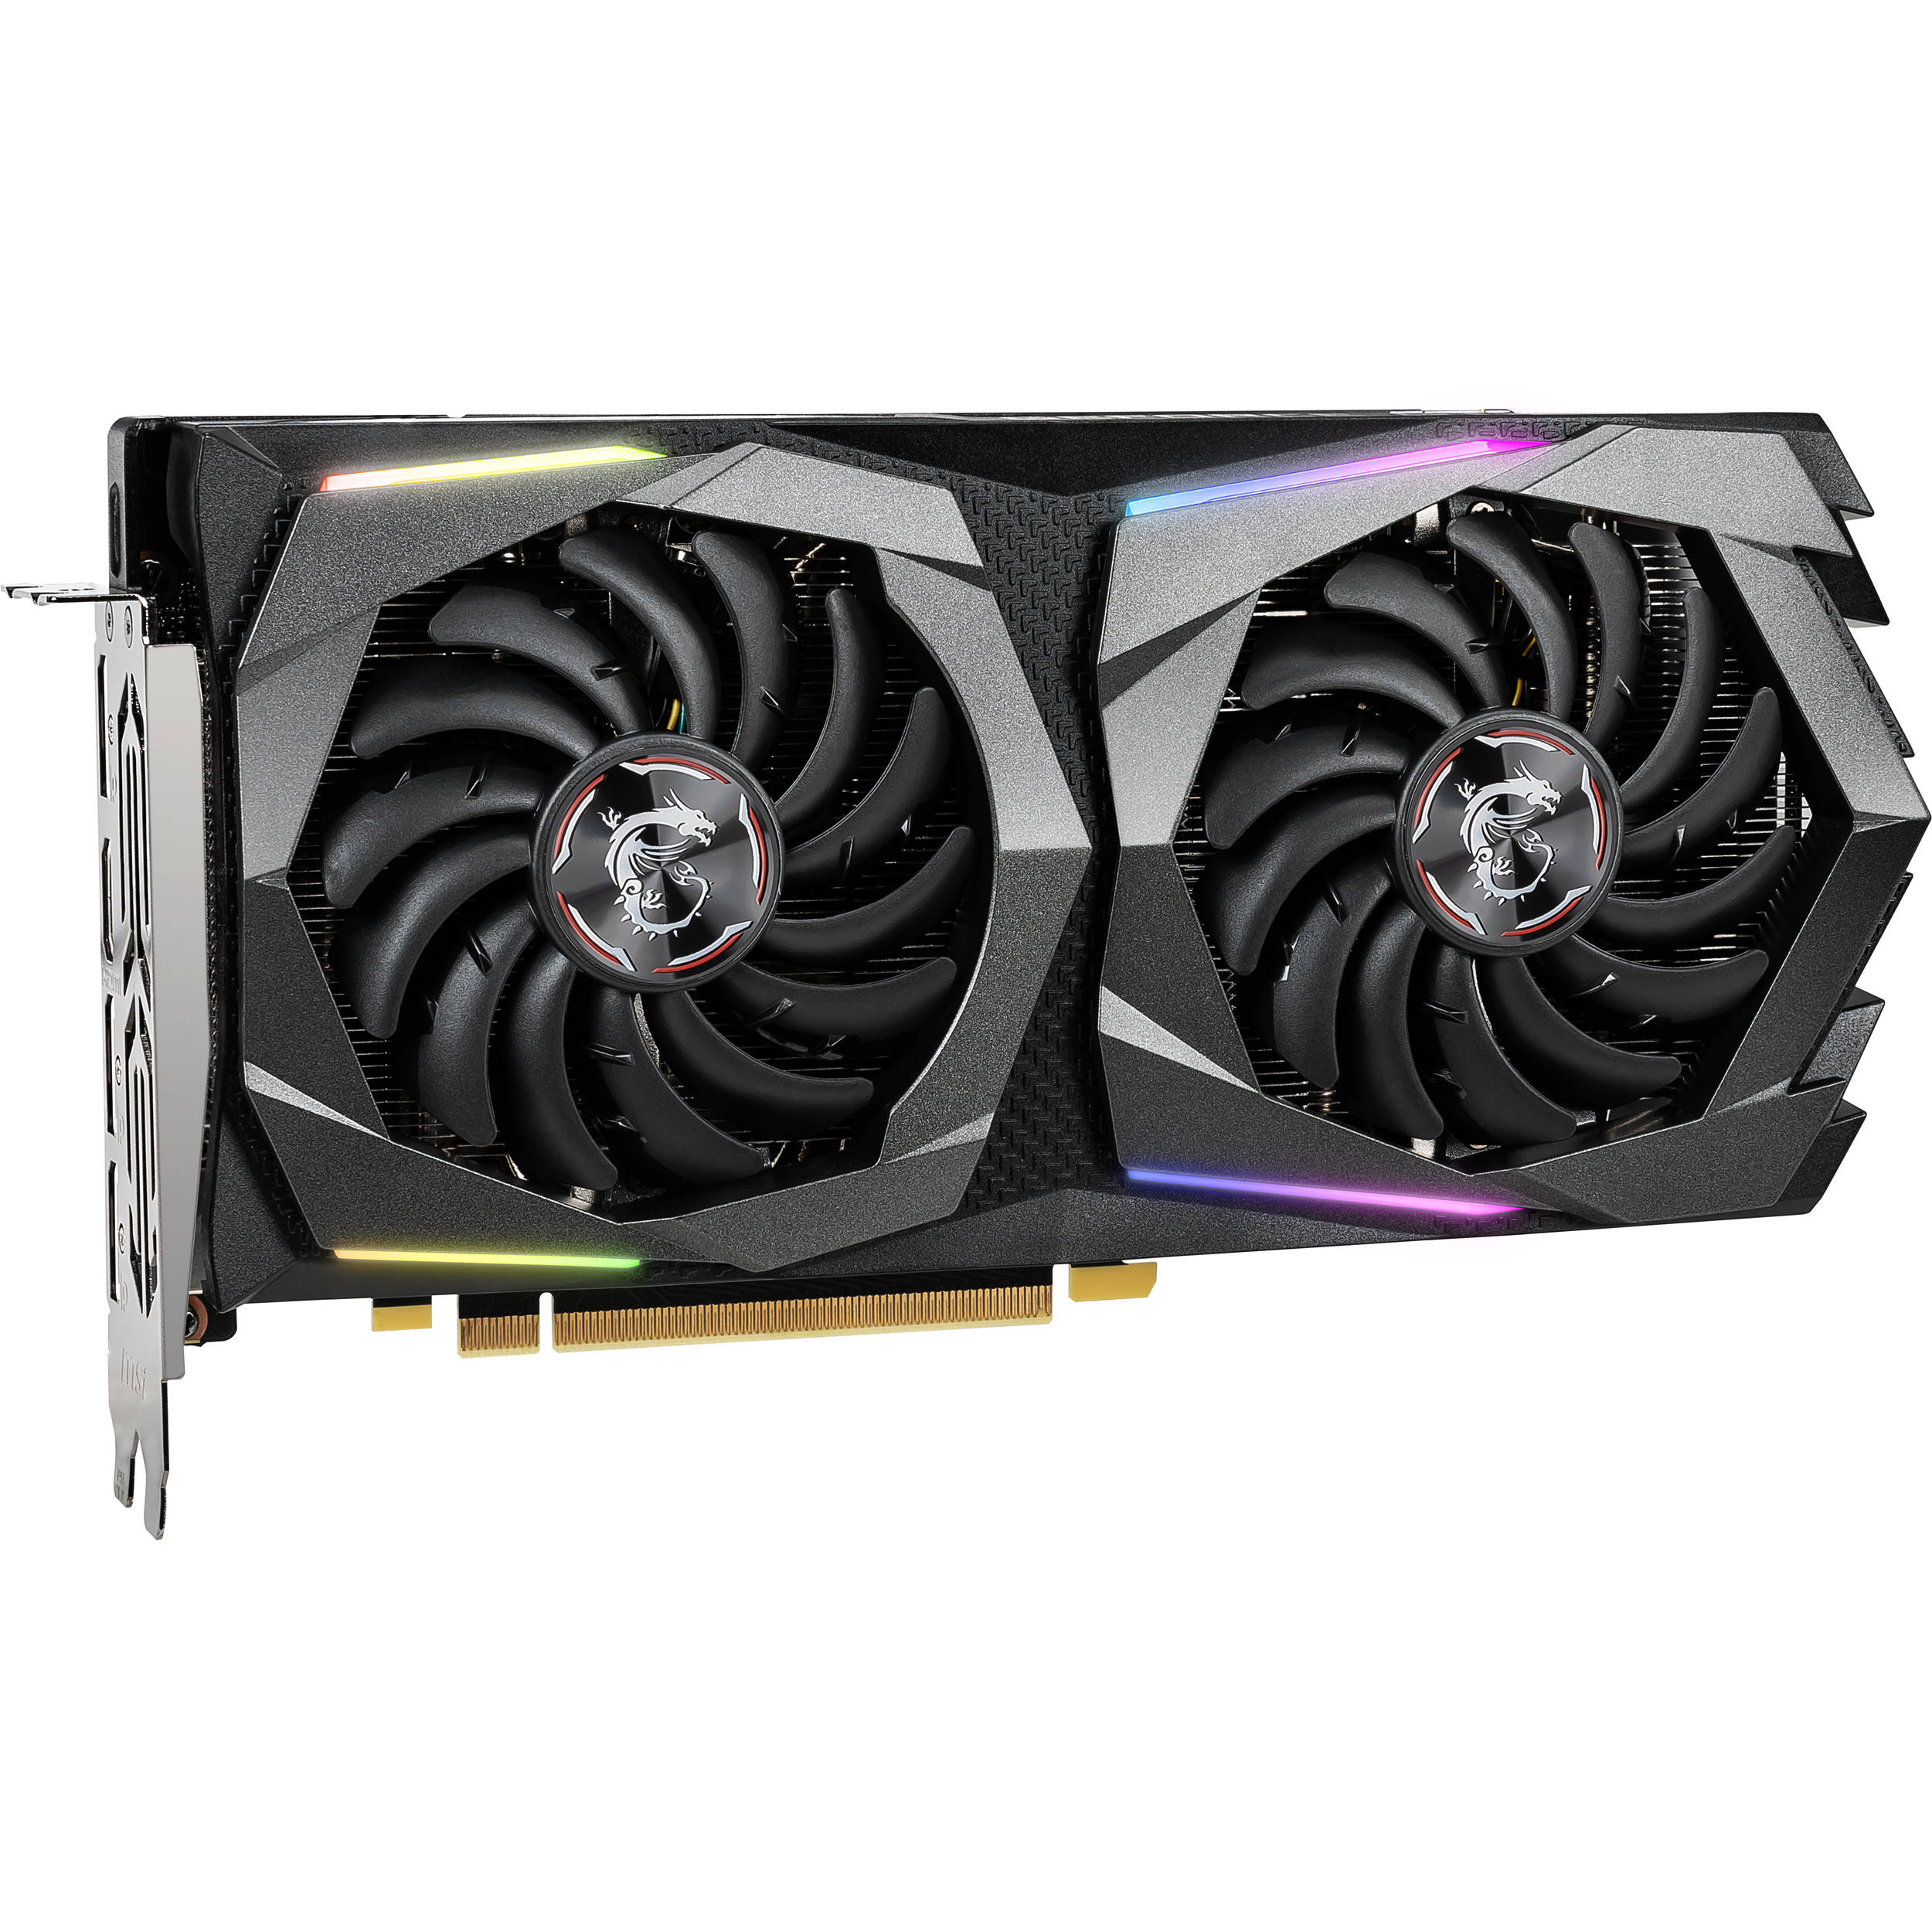 MSI GeForce GTX 1660 GAMING X Graphics Card